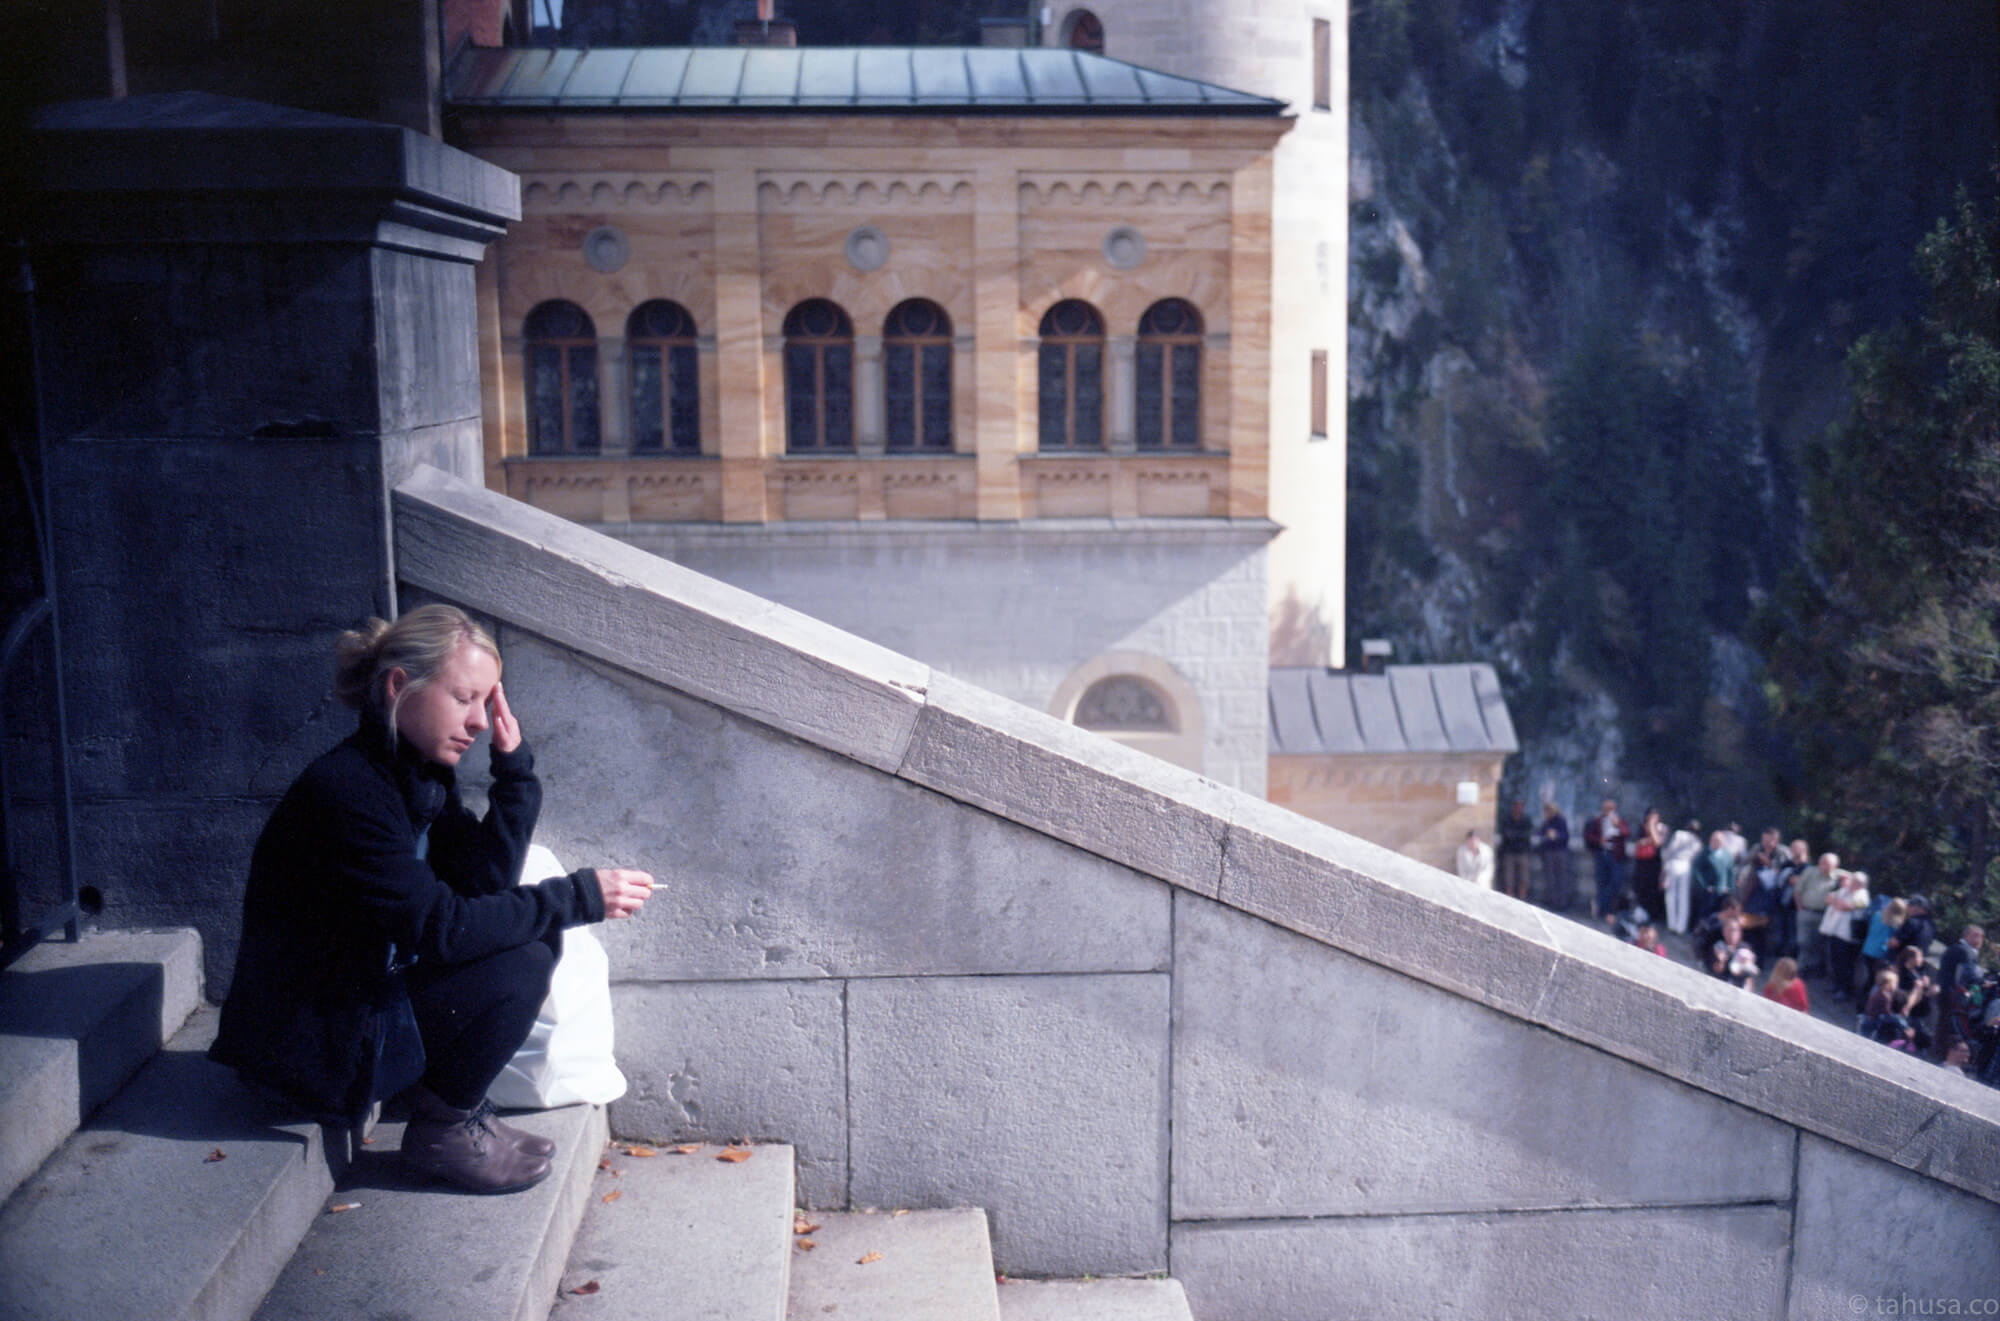 A-girl-with-cigarette-resting-in-Neuschwanstein-Castle-füssen-Germany-travel-photography-using-ektar-100-kodak-and-summicron-35mm-f2-8elements-v1-leica-film